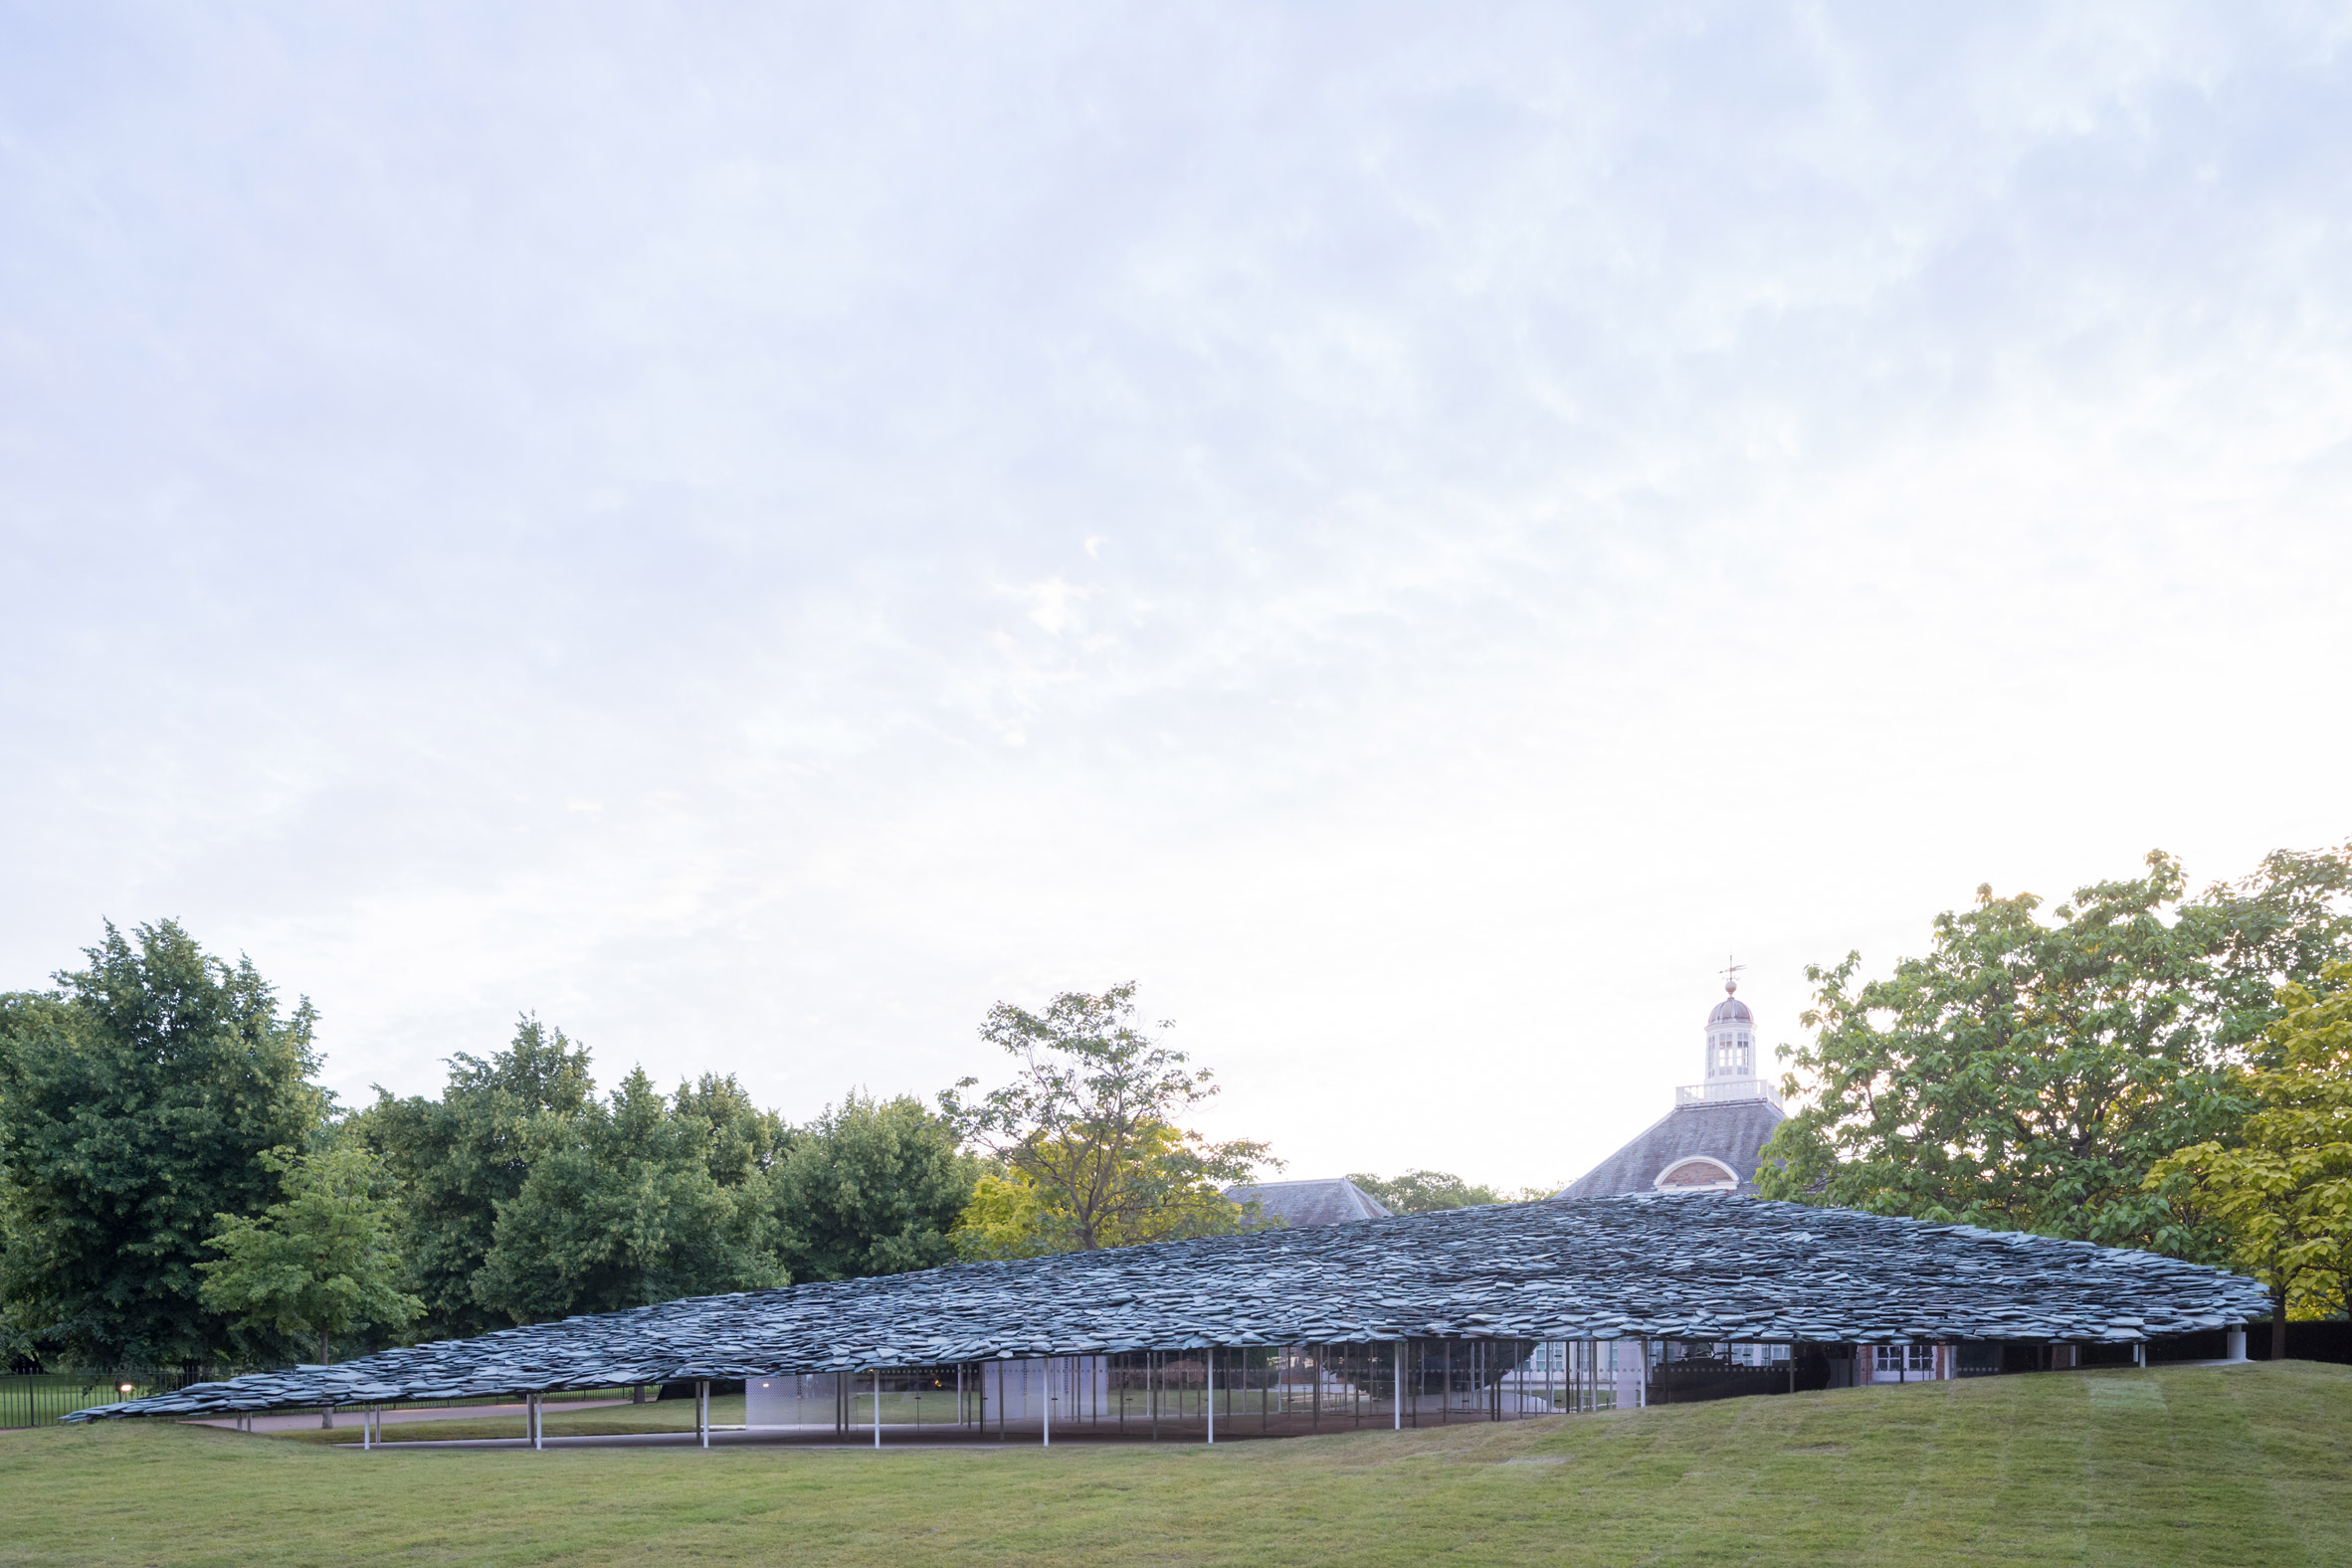 Serpentine Pavilion 2019 by Junya Ishigami